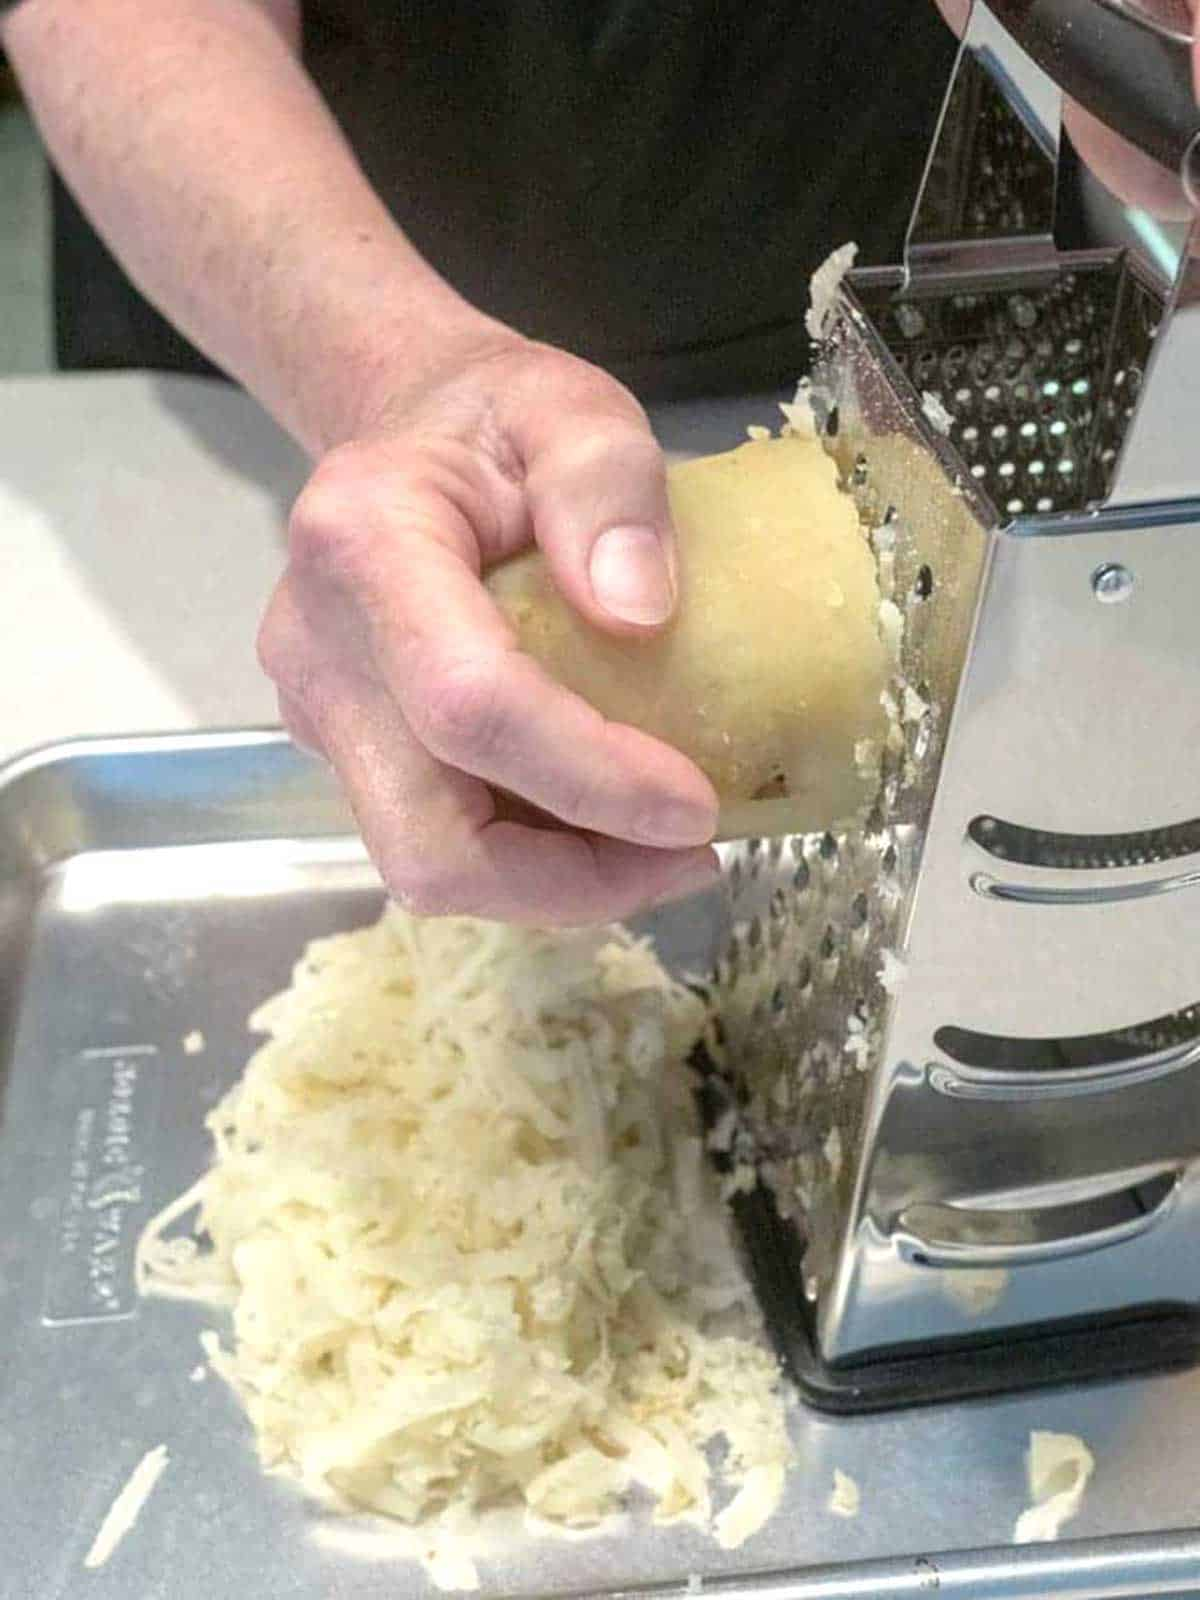 Grating potatoes with box grater.